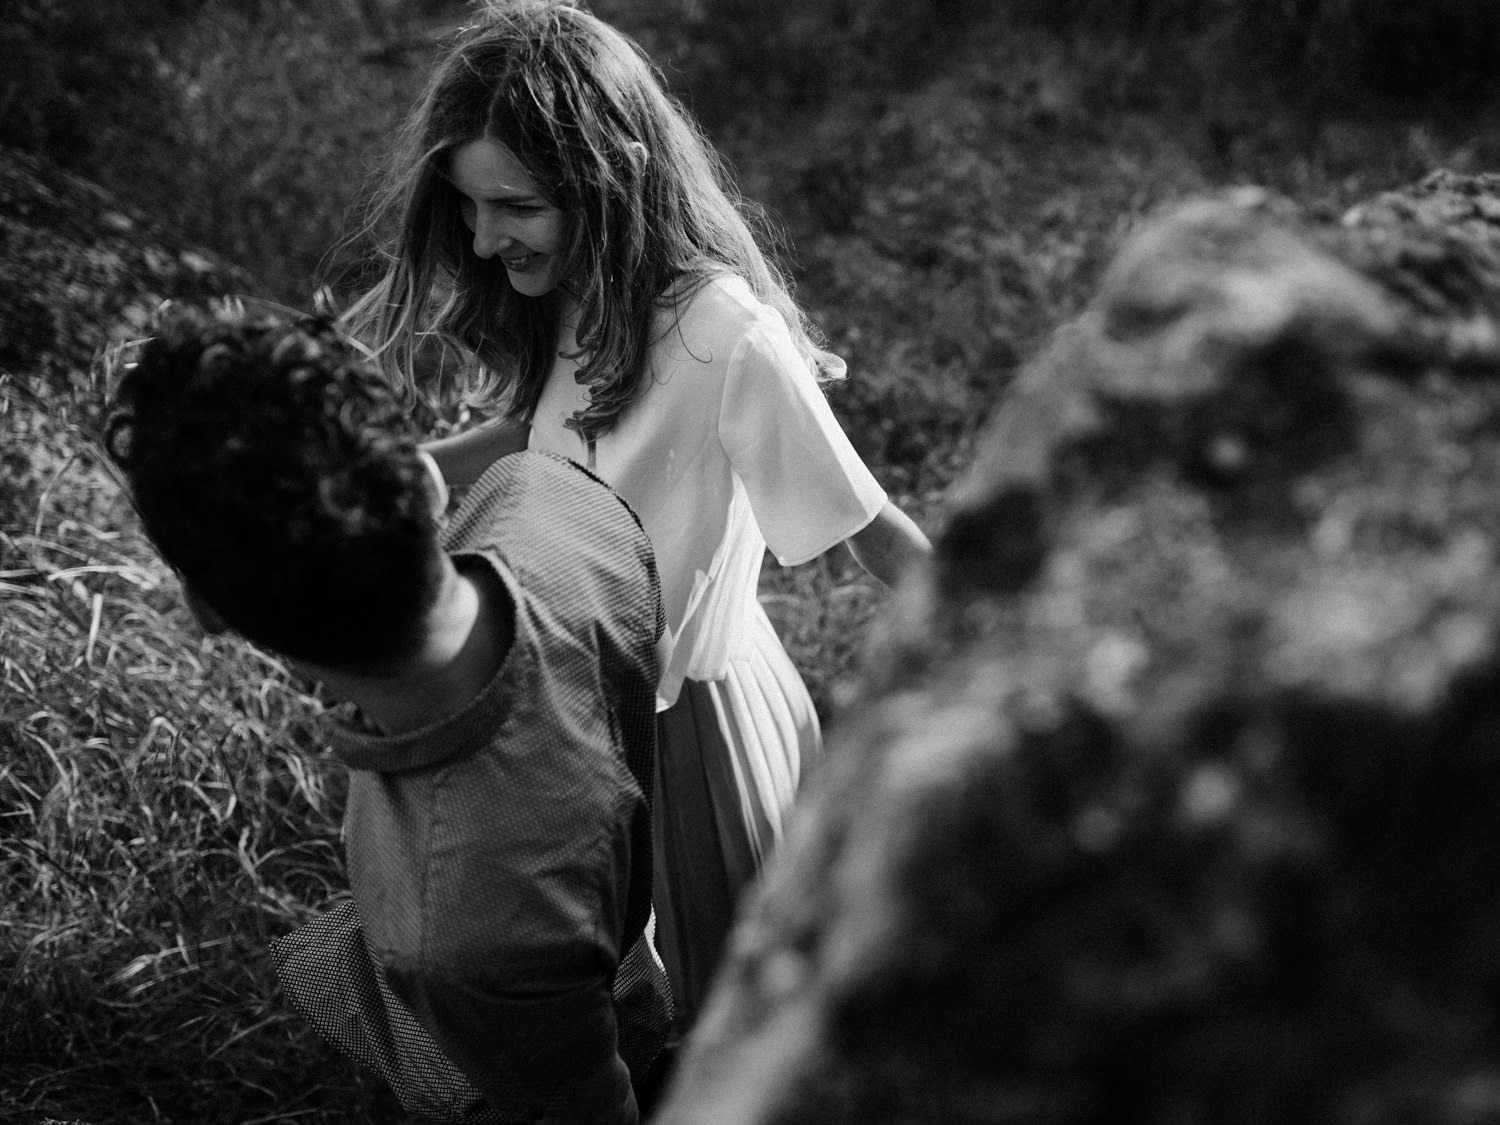 seance-engagement-nature-afrique-du-sud-capyture-wedding-photographer-12